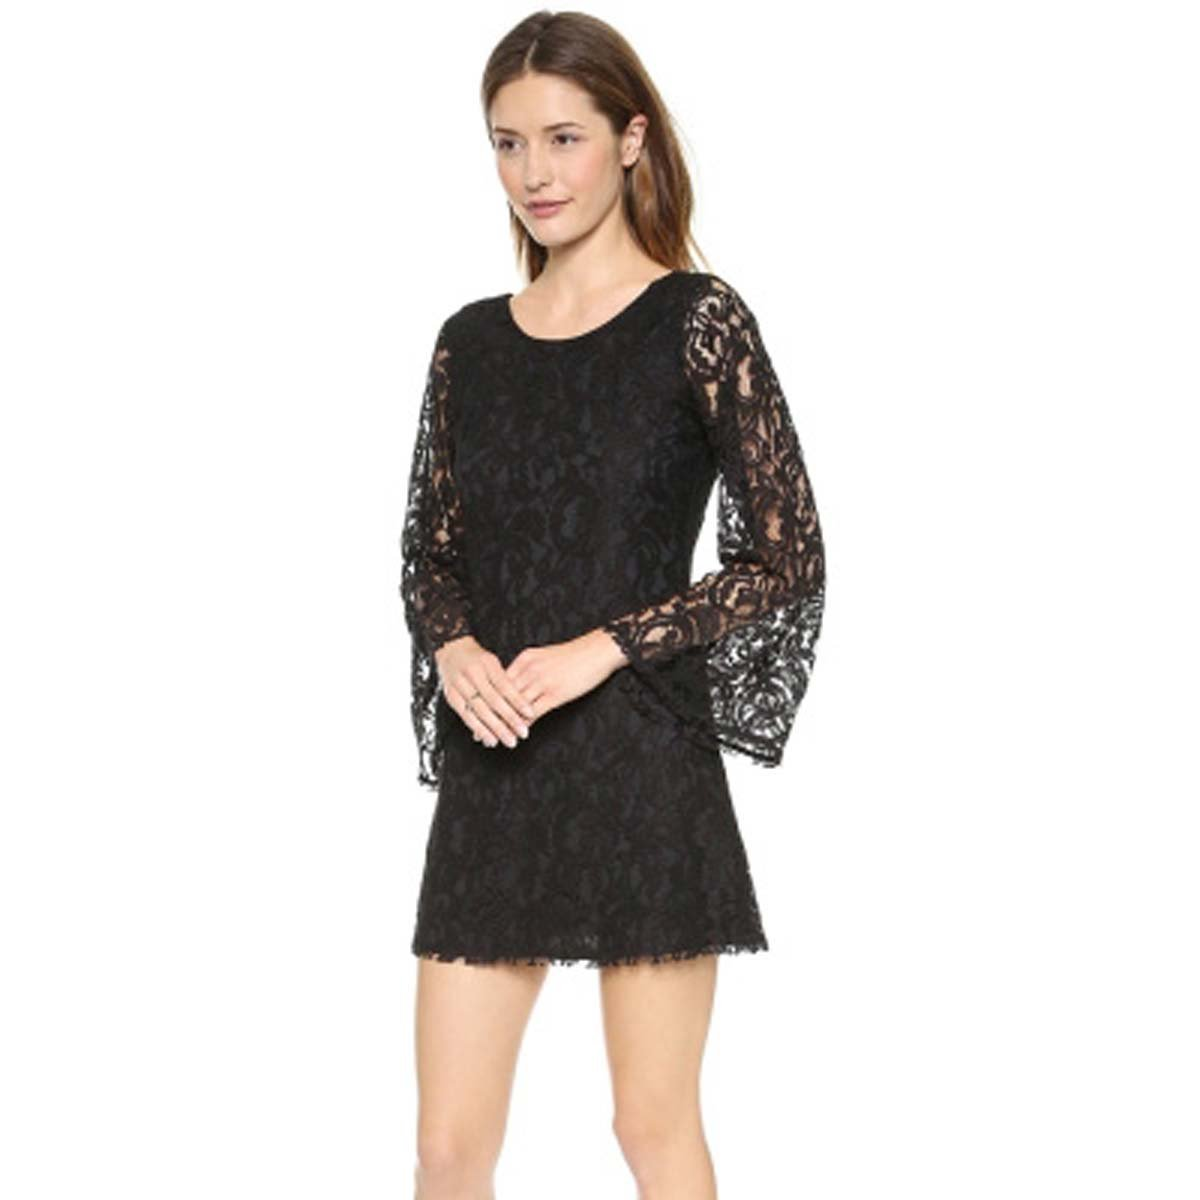 a0c2d706d0f29 WeHeart Women Black Flared Sleeve Lace Mini Dress at Amazon Women's Clothing  store: